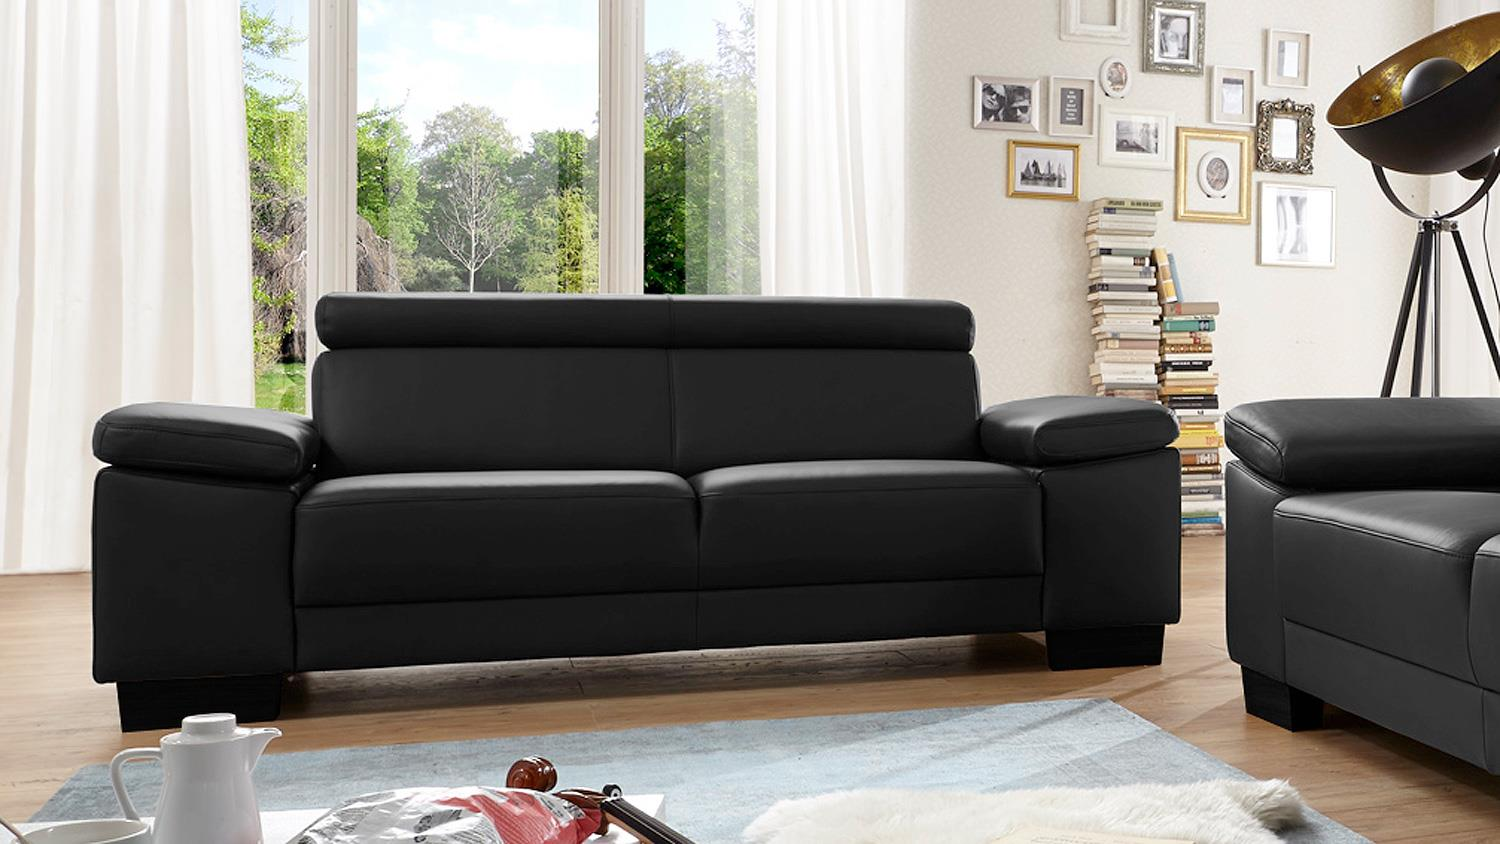 sofa santiago zweisitzer in leder schwarz mit funktion 206. Black Bedroom Furniture Sets. Home Design Ideas